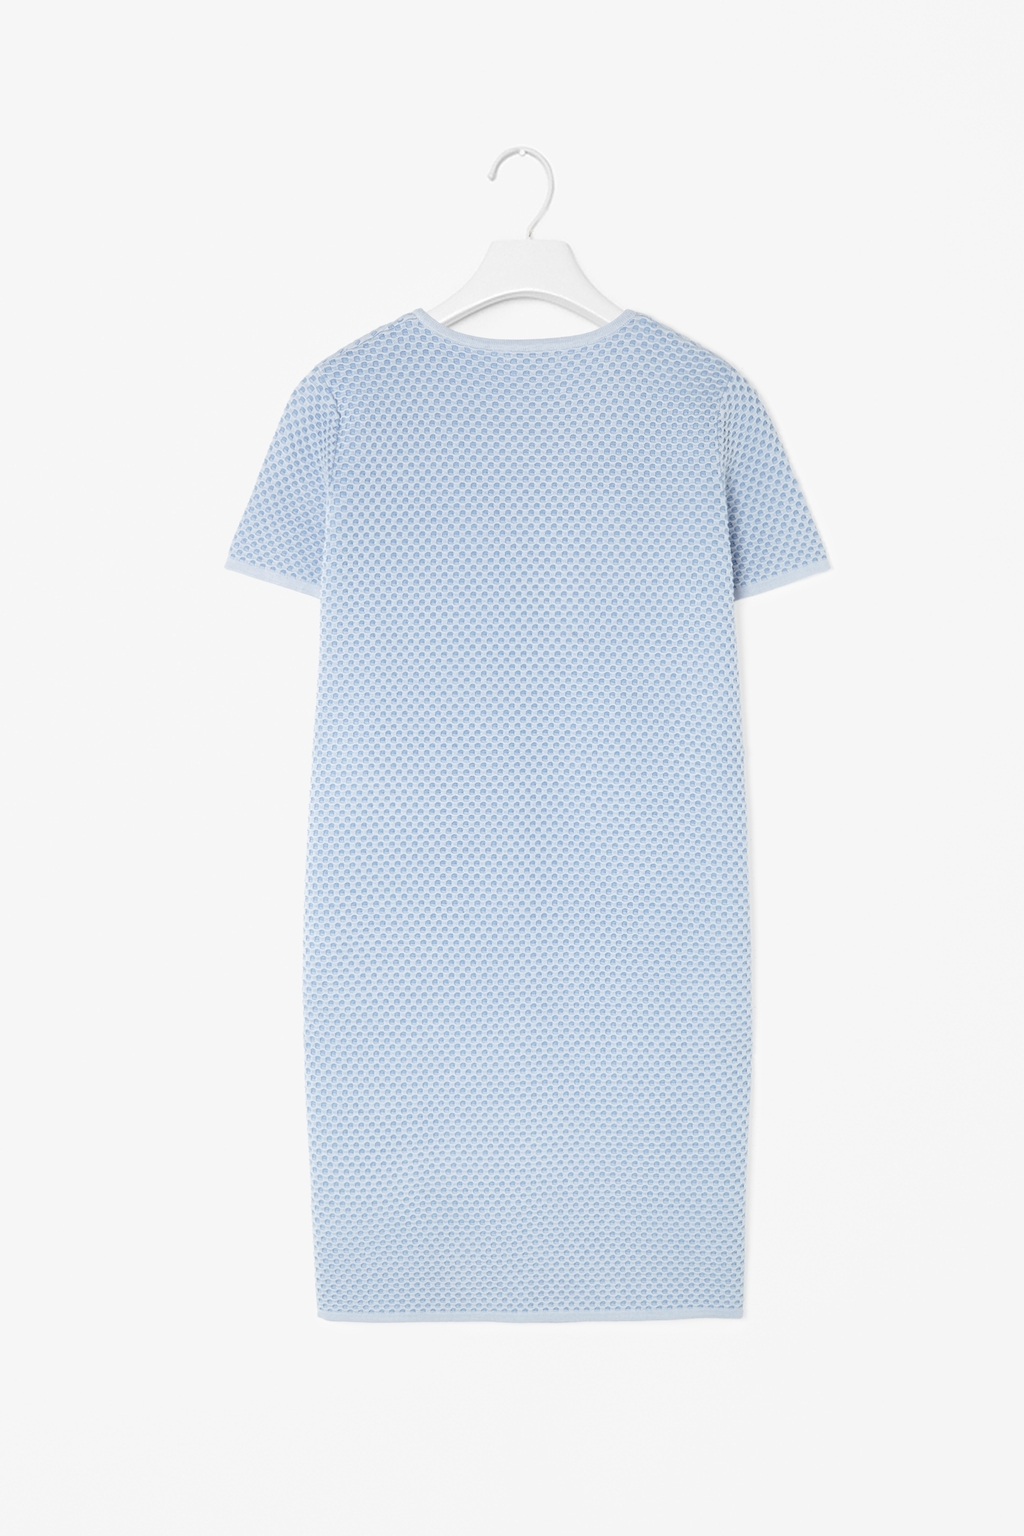 Structured Knit Dress - style: t-shirt; length: mid thigh; pattern: plain; predominant colour: pale blue; occasions: evening, creative work; fit: straight cut; fibres: cotton - 100%; neckline: crew; sleeve length: short sleeve; sleeve style: standard; texture group: knits/crochet; pattern type: knitted - other; season: s/s 2014